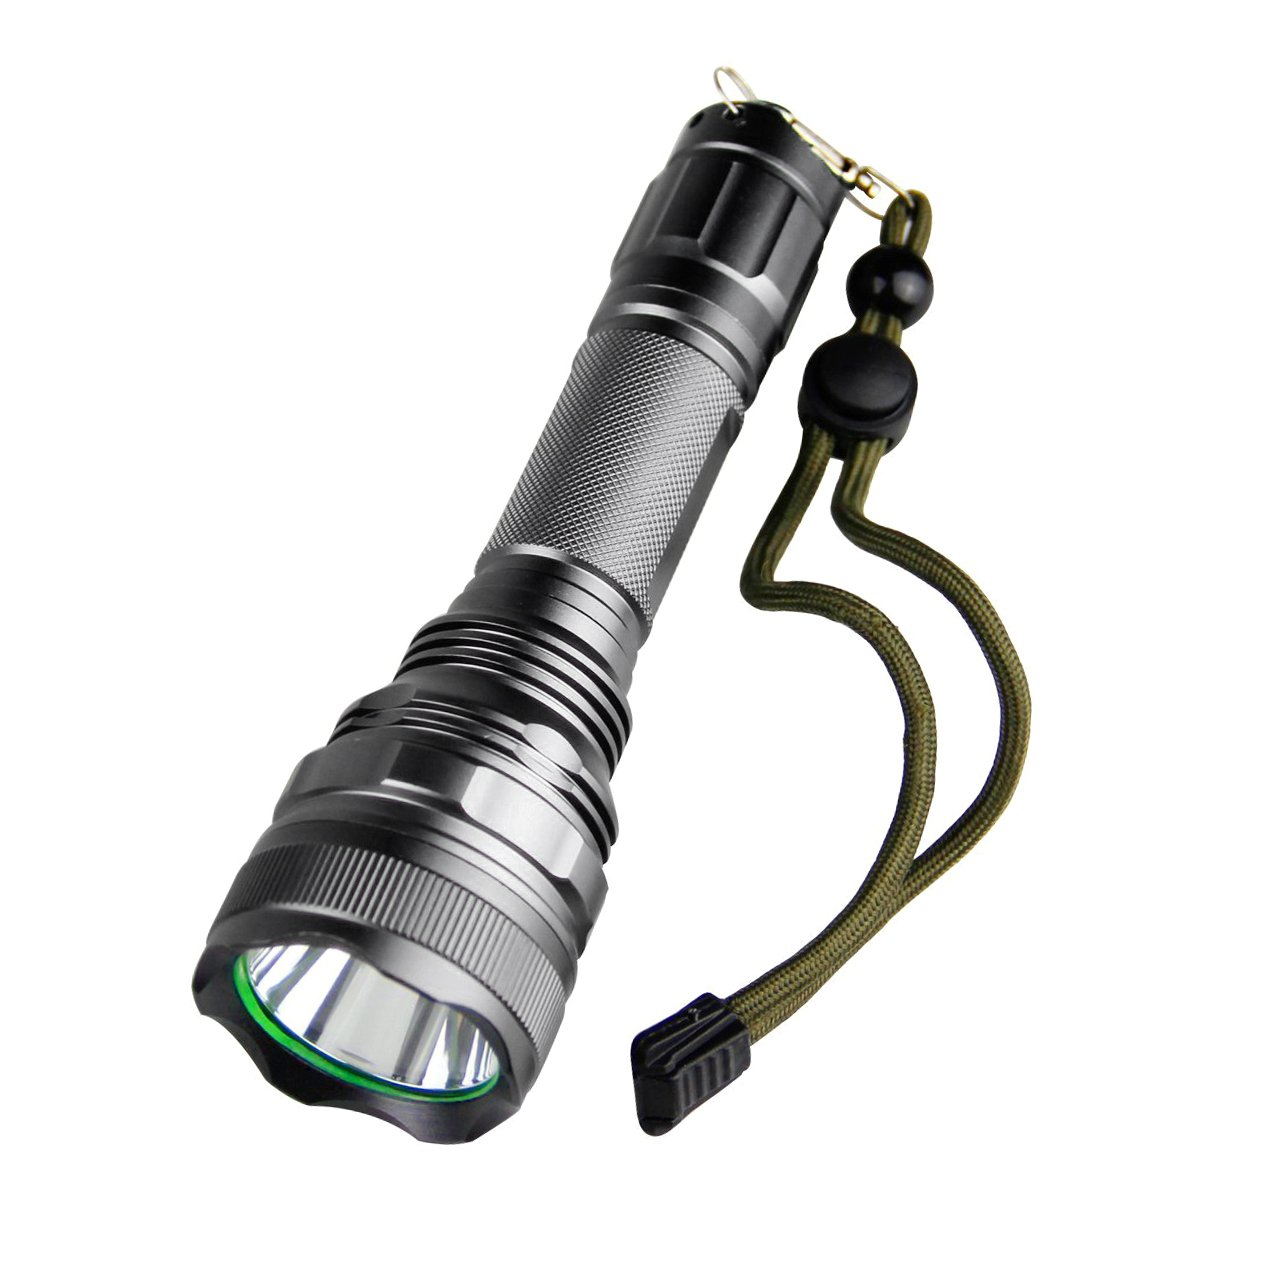 TOPIA STAR Powerful Flashlight, Ultra Bright Led Flashlights,Water Resistant Rechargeable Tactical Flashlights